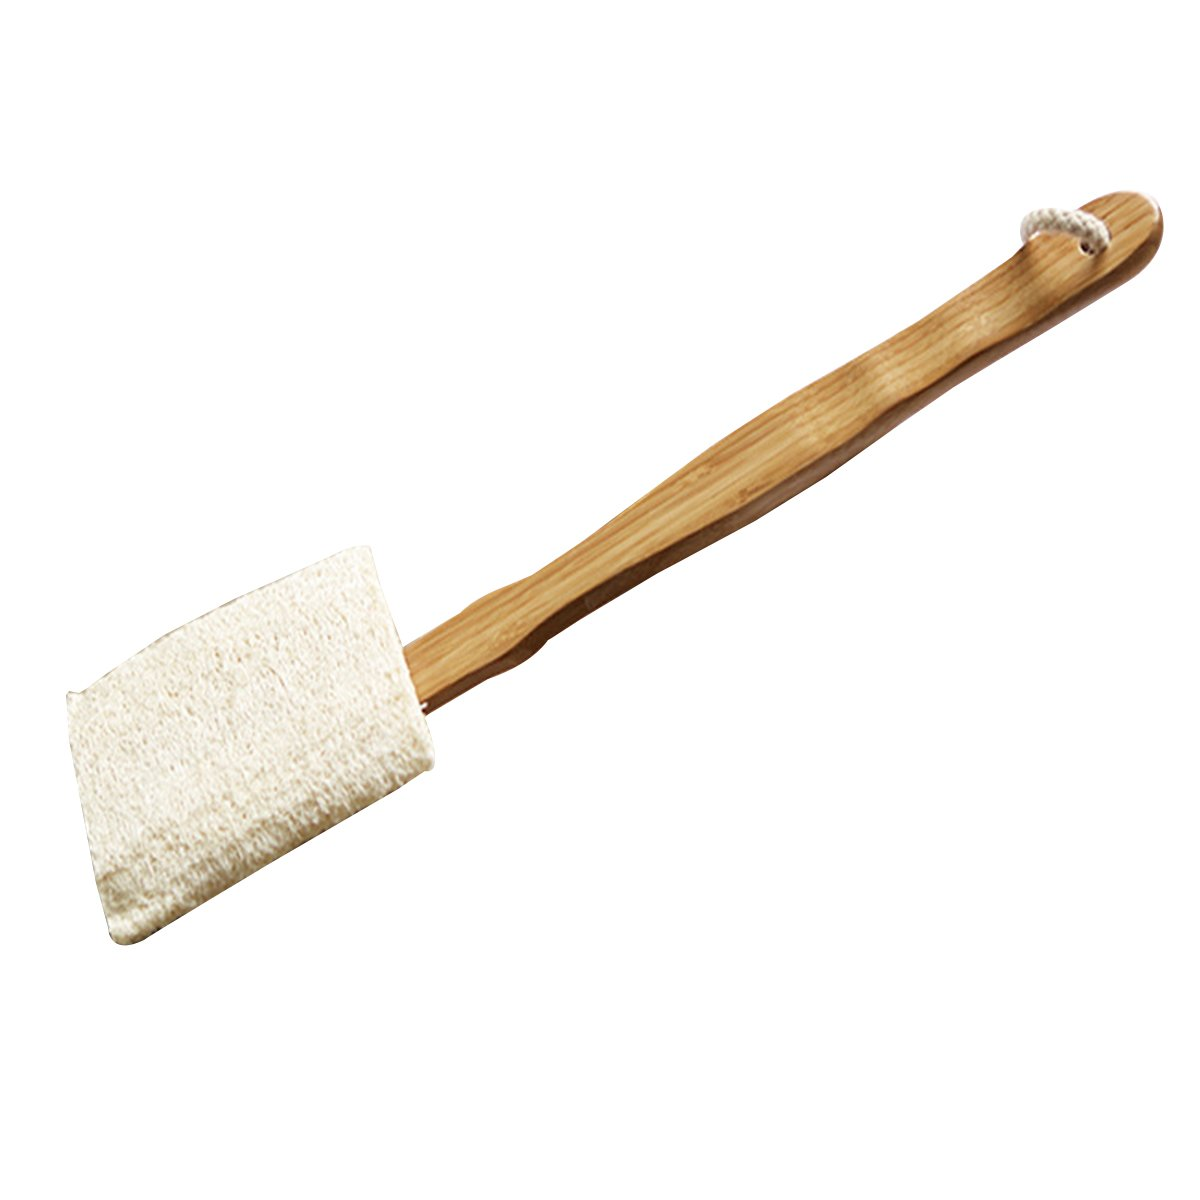 ULTNICE Exfoliating Bath Brush Shower Loofah Brush Bath Body Brush on A Wooden Handle